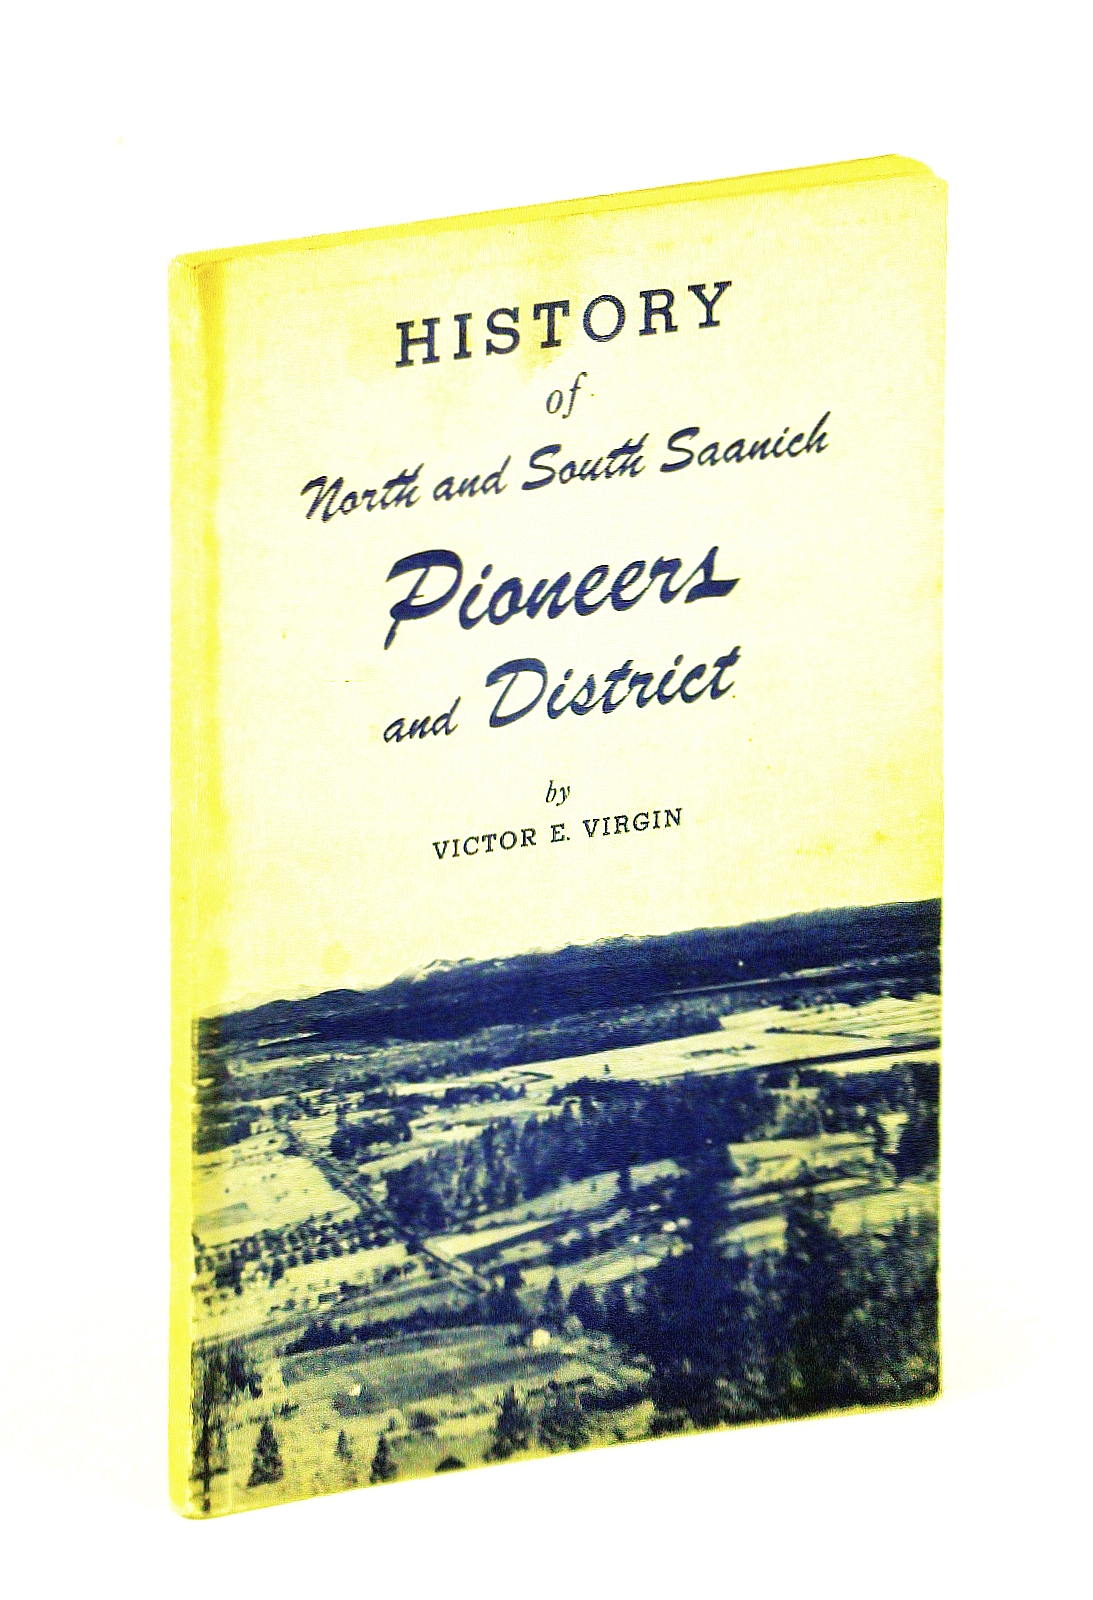 Image for History of North and South Saanich: Pioneers and District